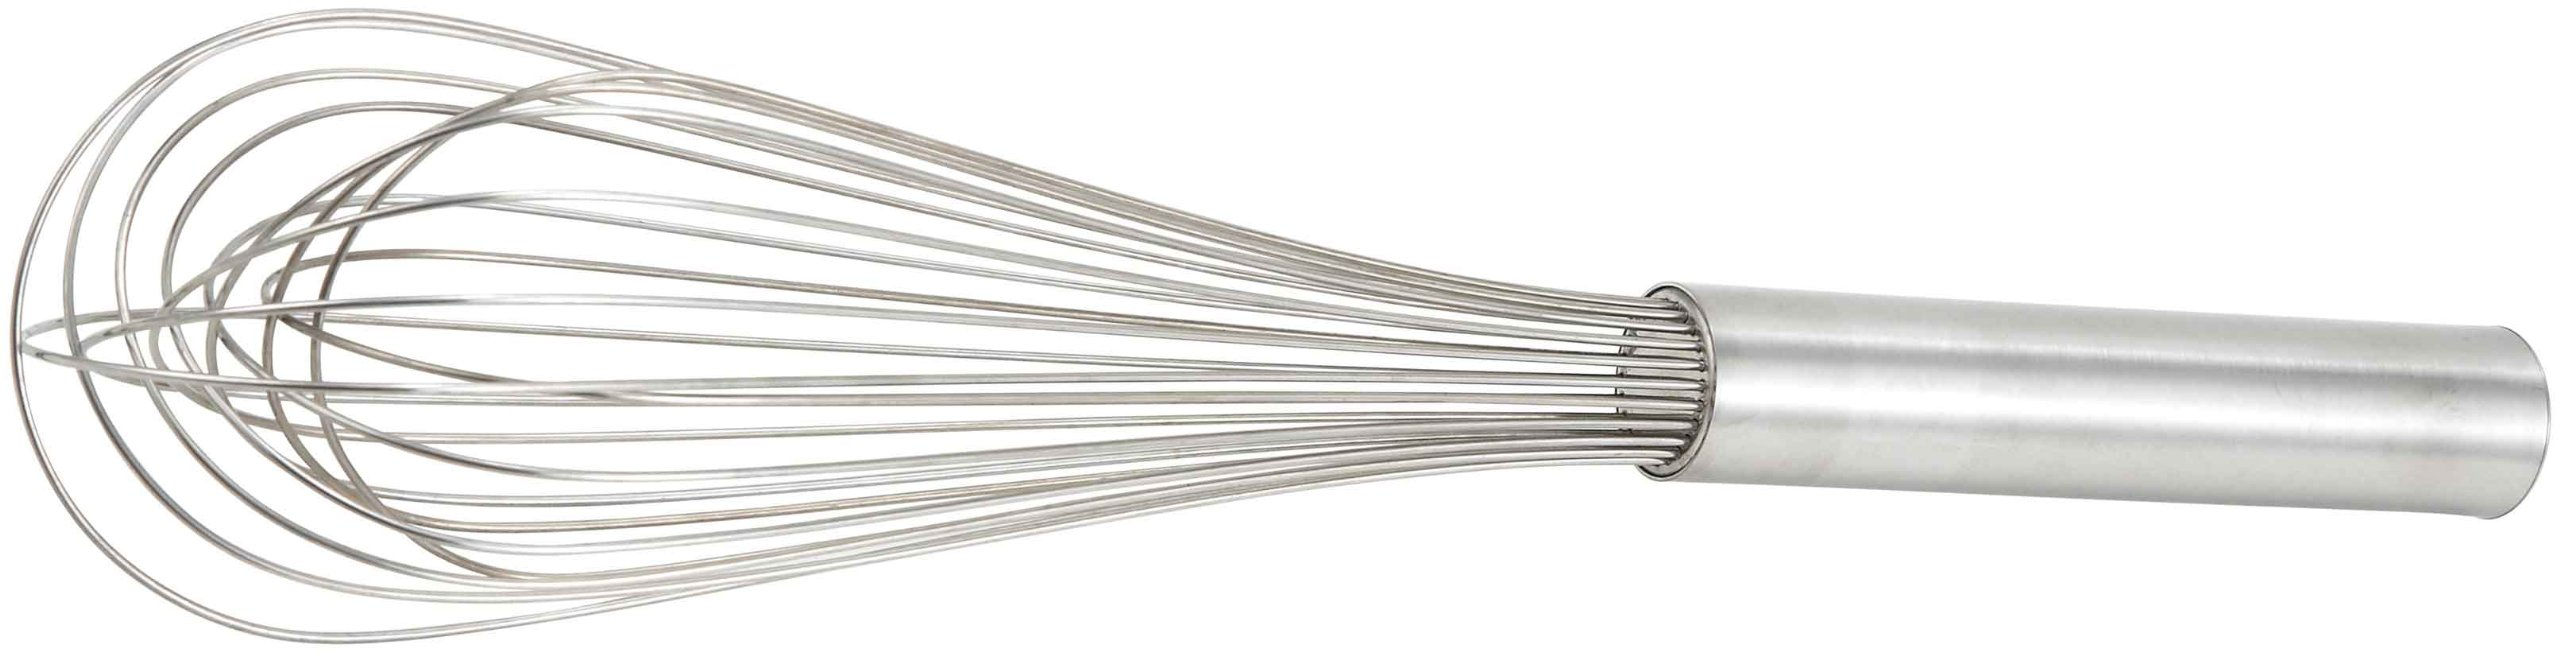 Winco Stainless Steel Piano Wire Whip, 10-Inch